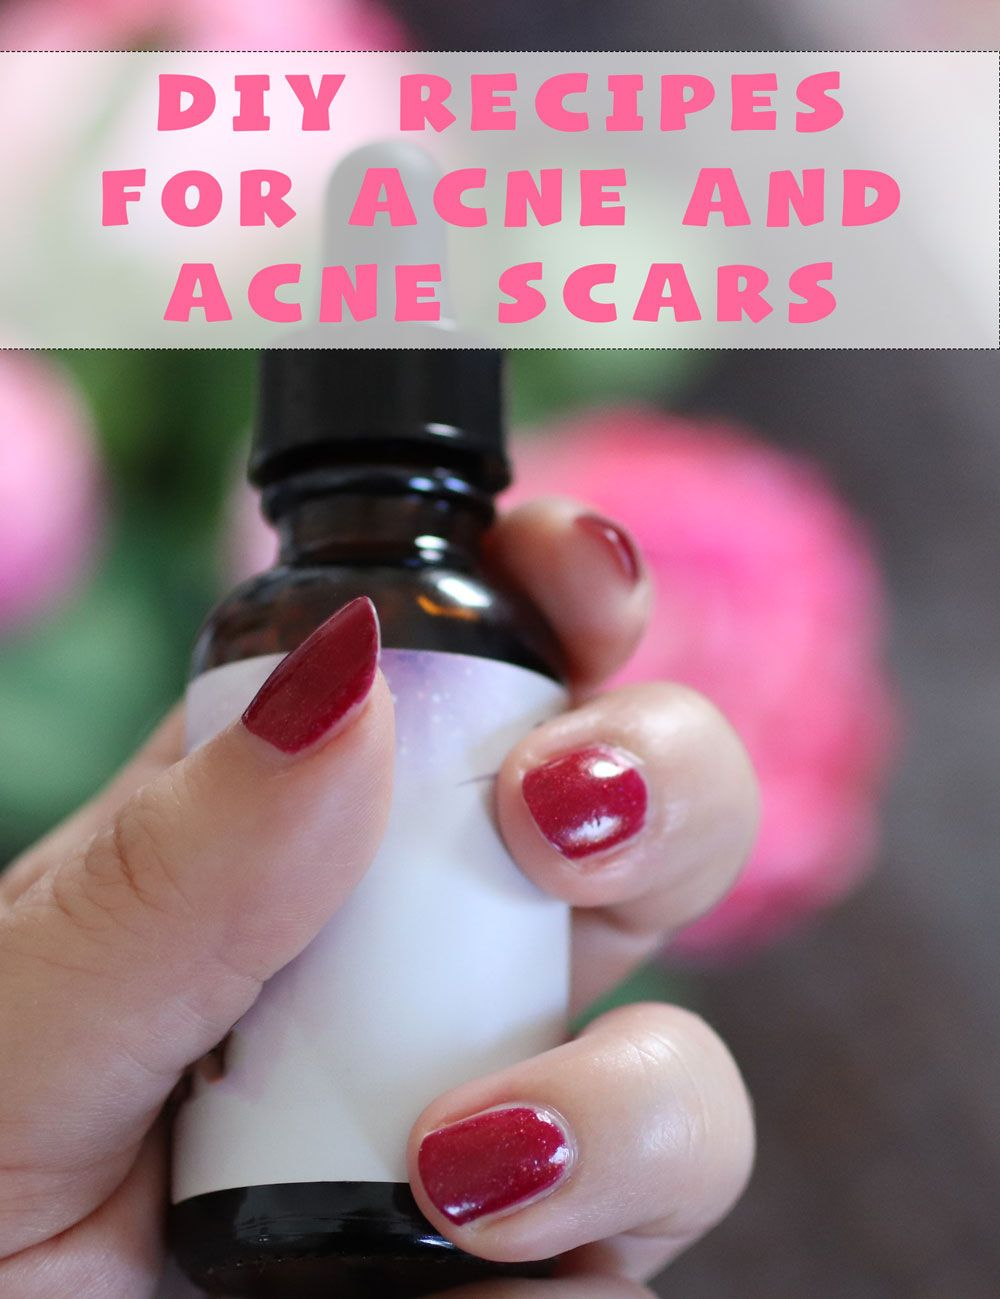 AD The best cruelty free DIY essential oils recipes for acne and acne scars using Aura Cacia products from iHerb by popular beauty blogger, My Beauty Bunny!